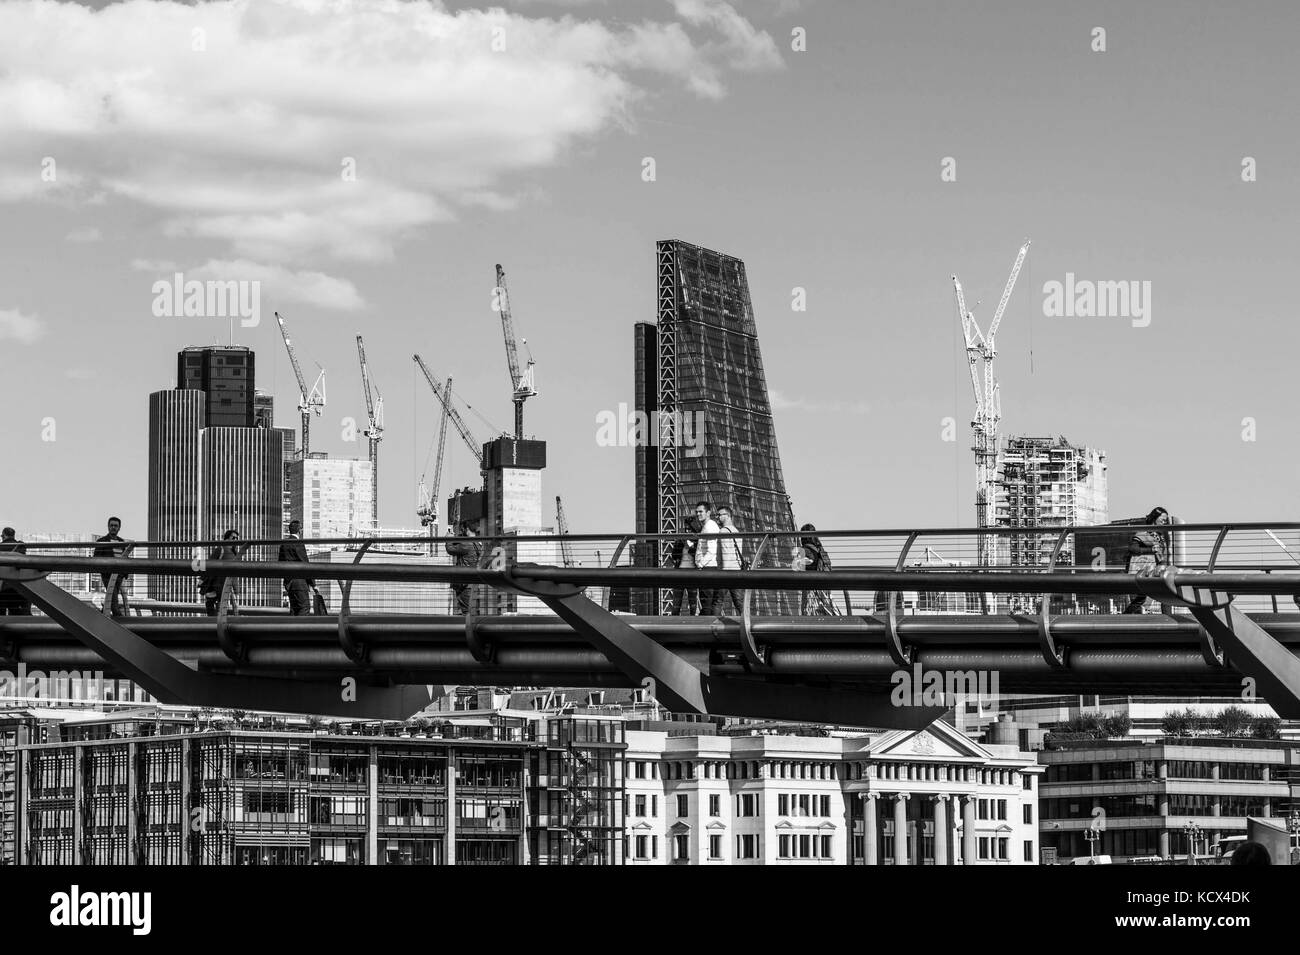 Black and White Monochrome Image of People Walking Across the Millennium Footbridge Across the River Thames In London - Stock Image